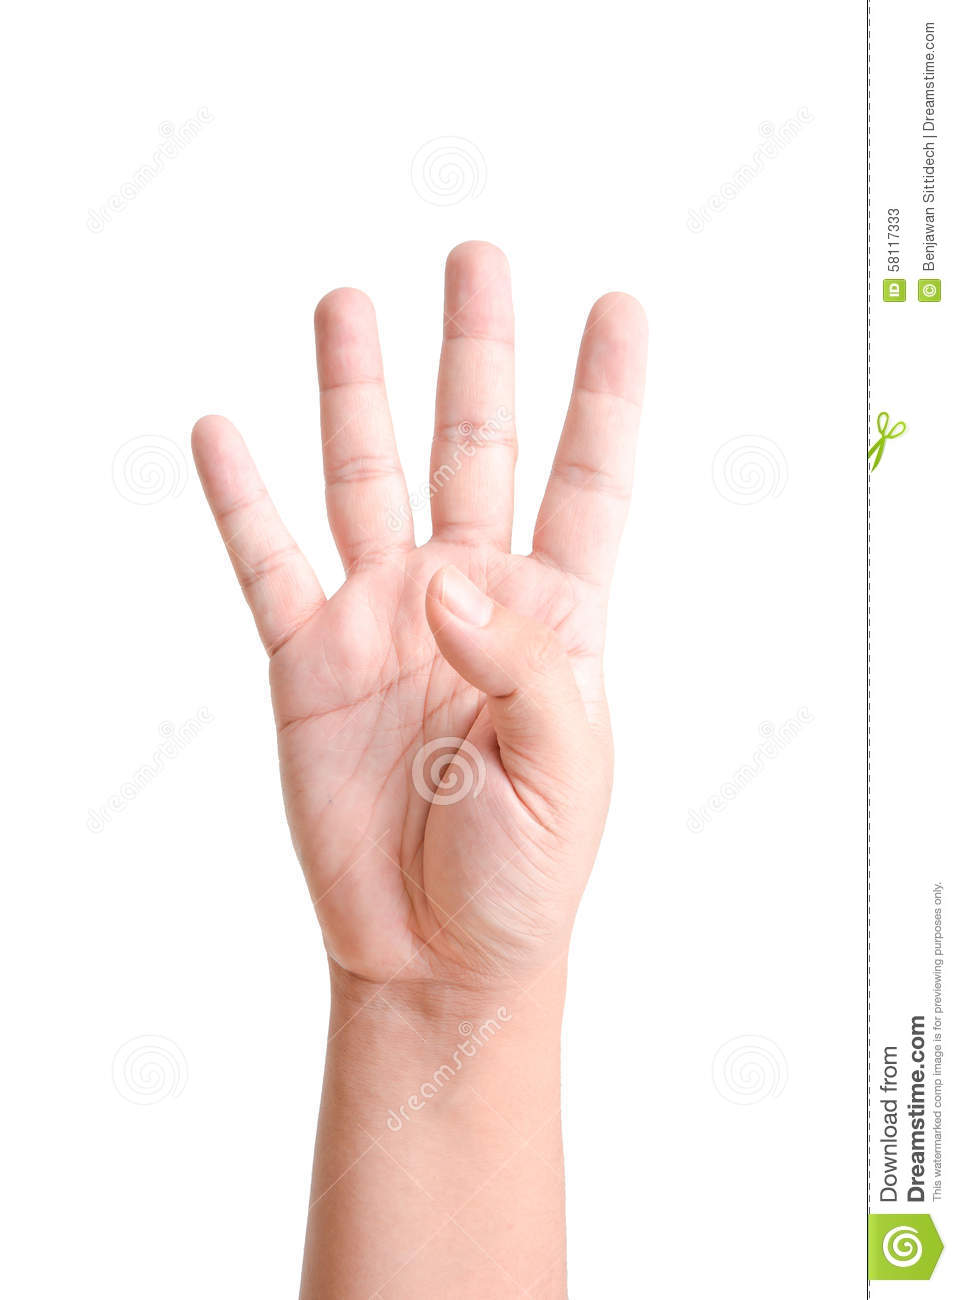 image Up to 3 fingers in my asshole